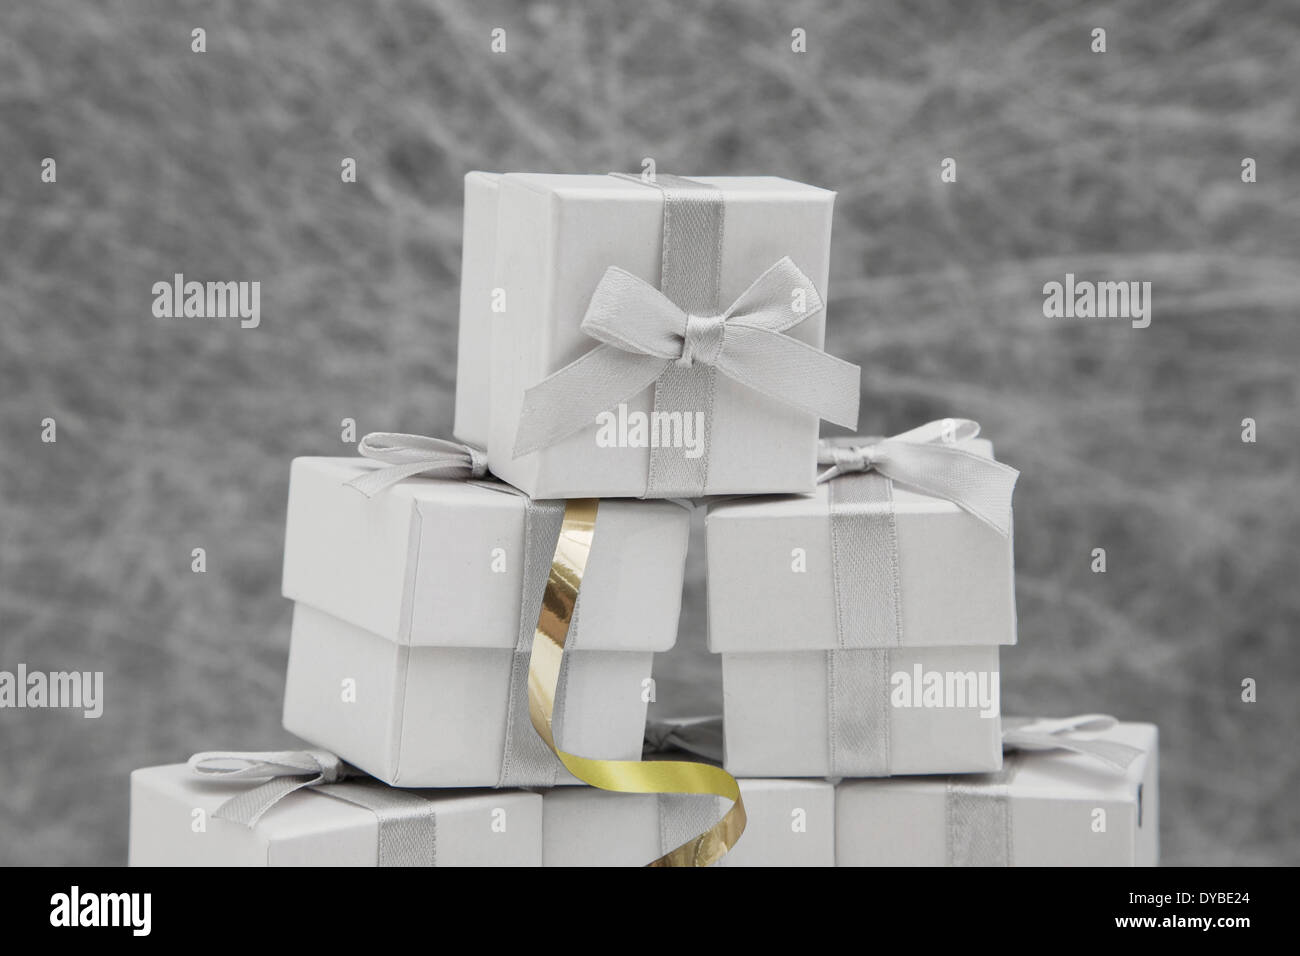 Wedding Favor boxes with gold ribbon Stock Photo: 68479324 - Alamy